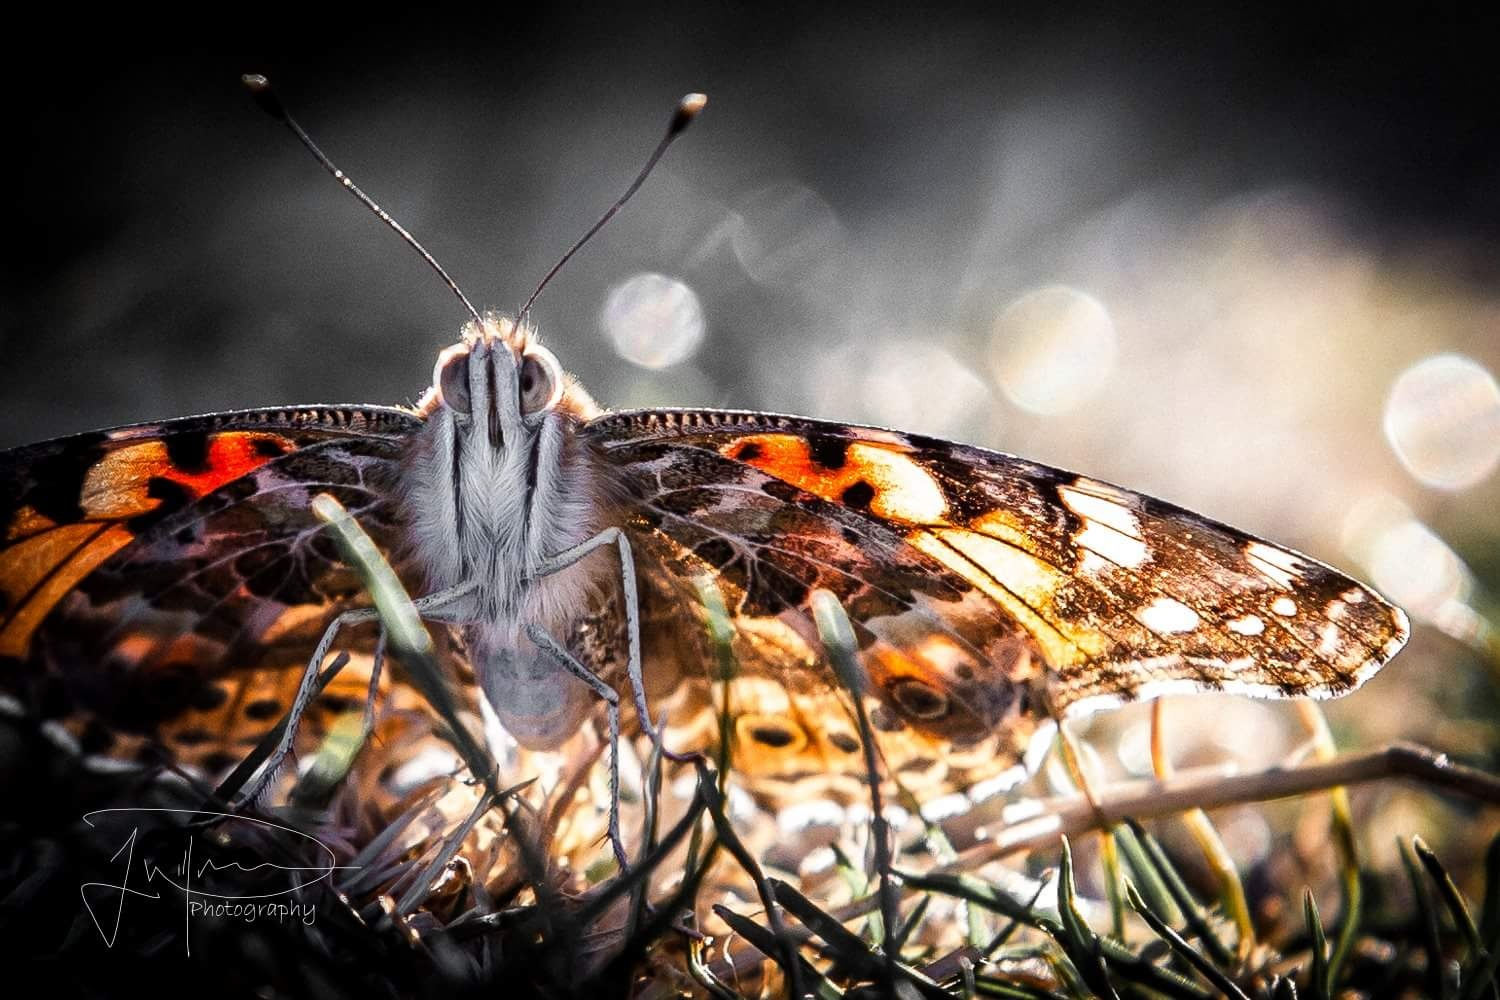 Butterfly at the park  by Jonathan Willner